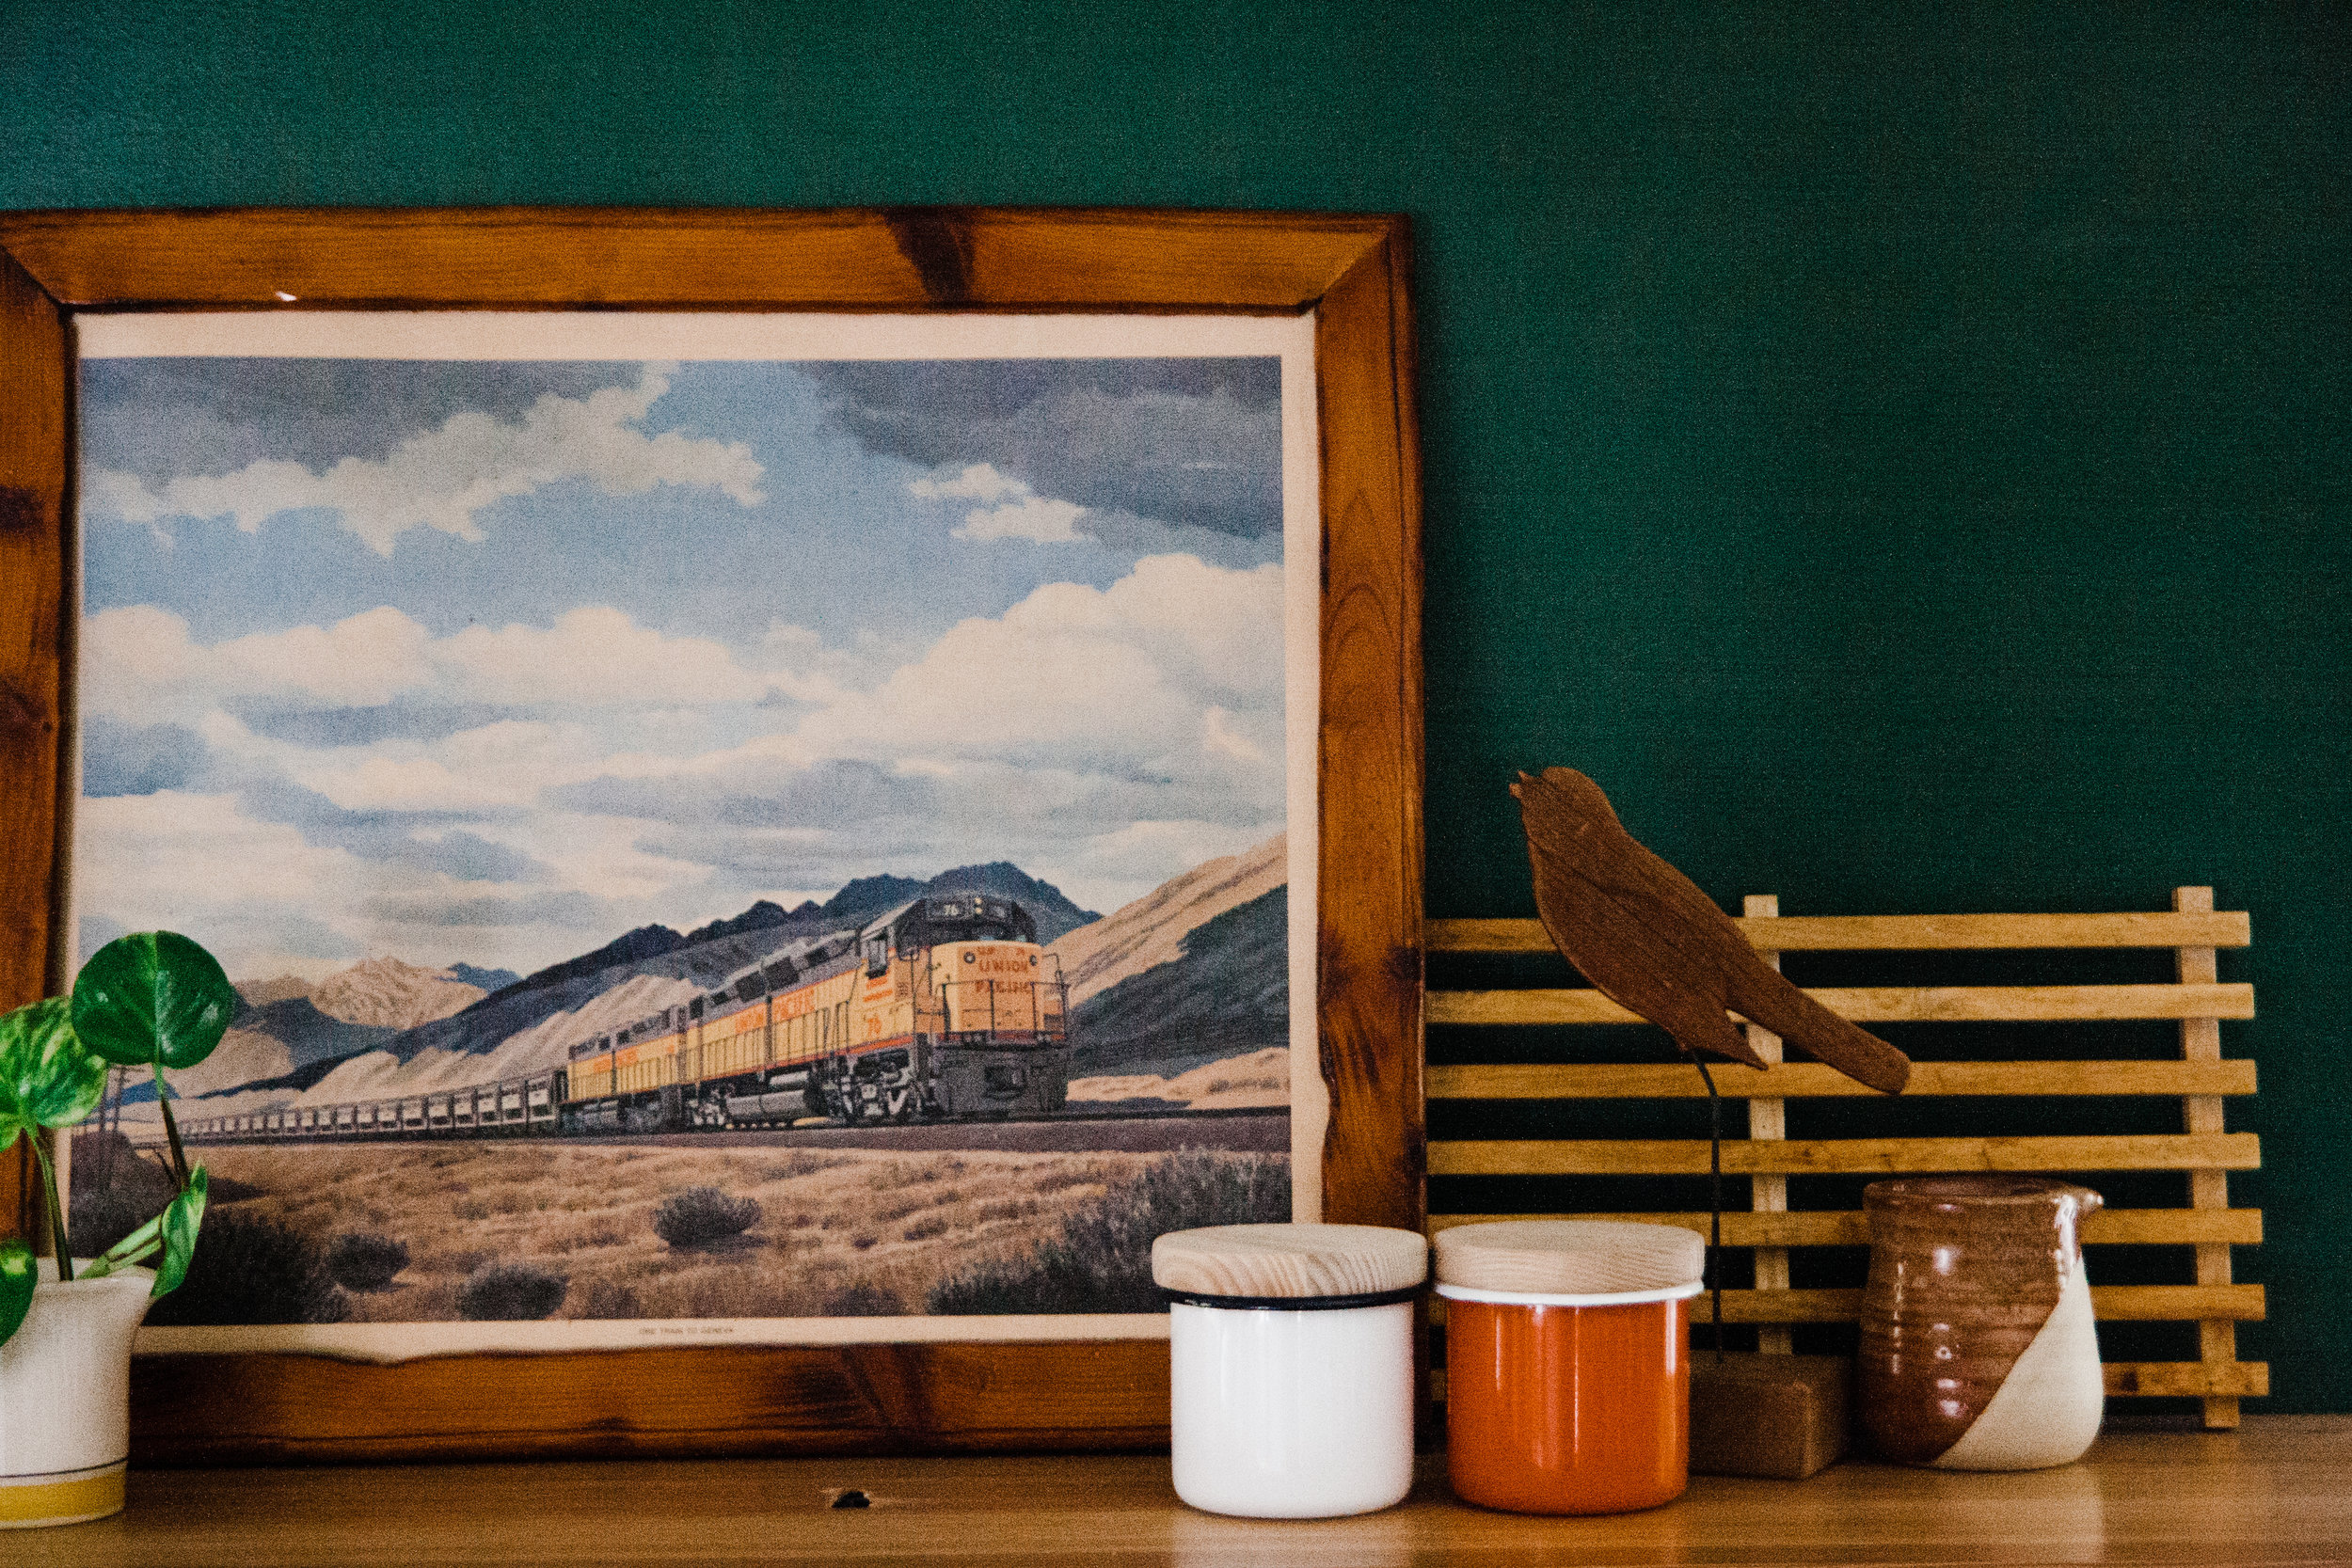 I found this framed vintage train print at the  Tulsa Flea Market  mid-renovation and knew it would be perfect in the new space.